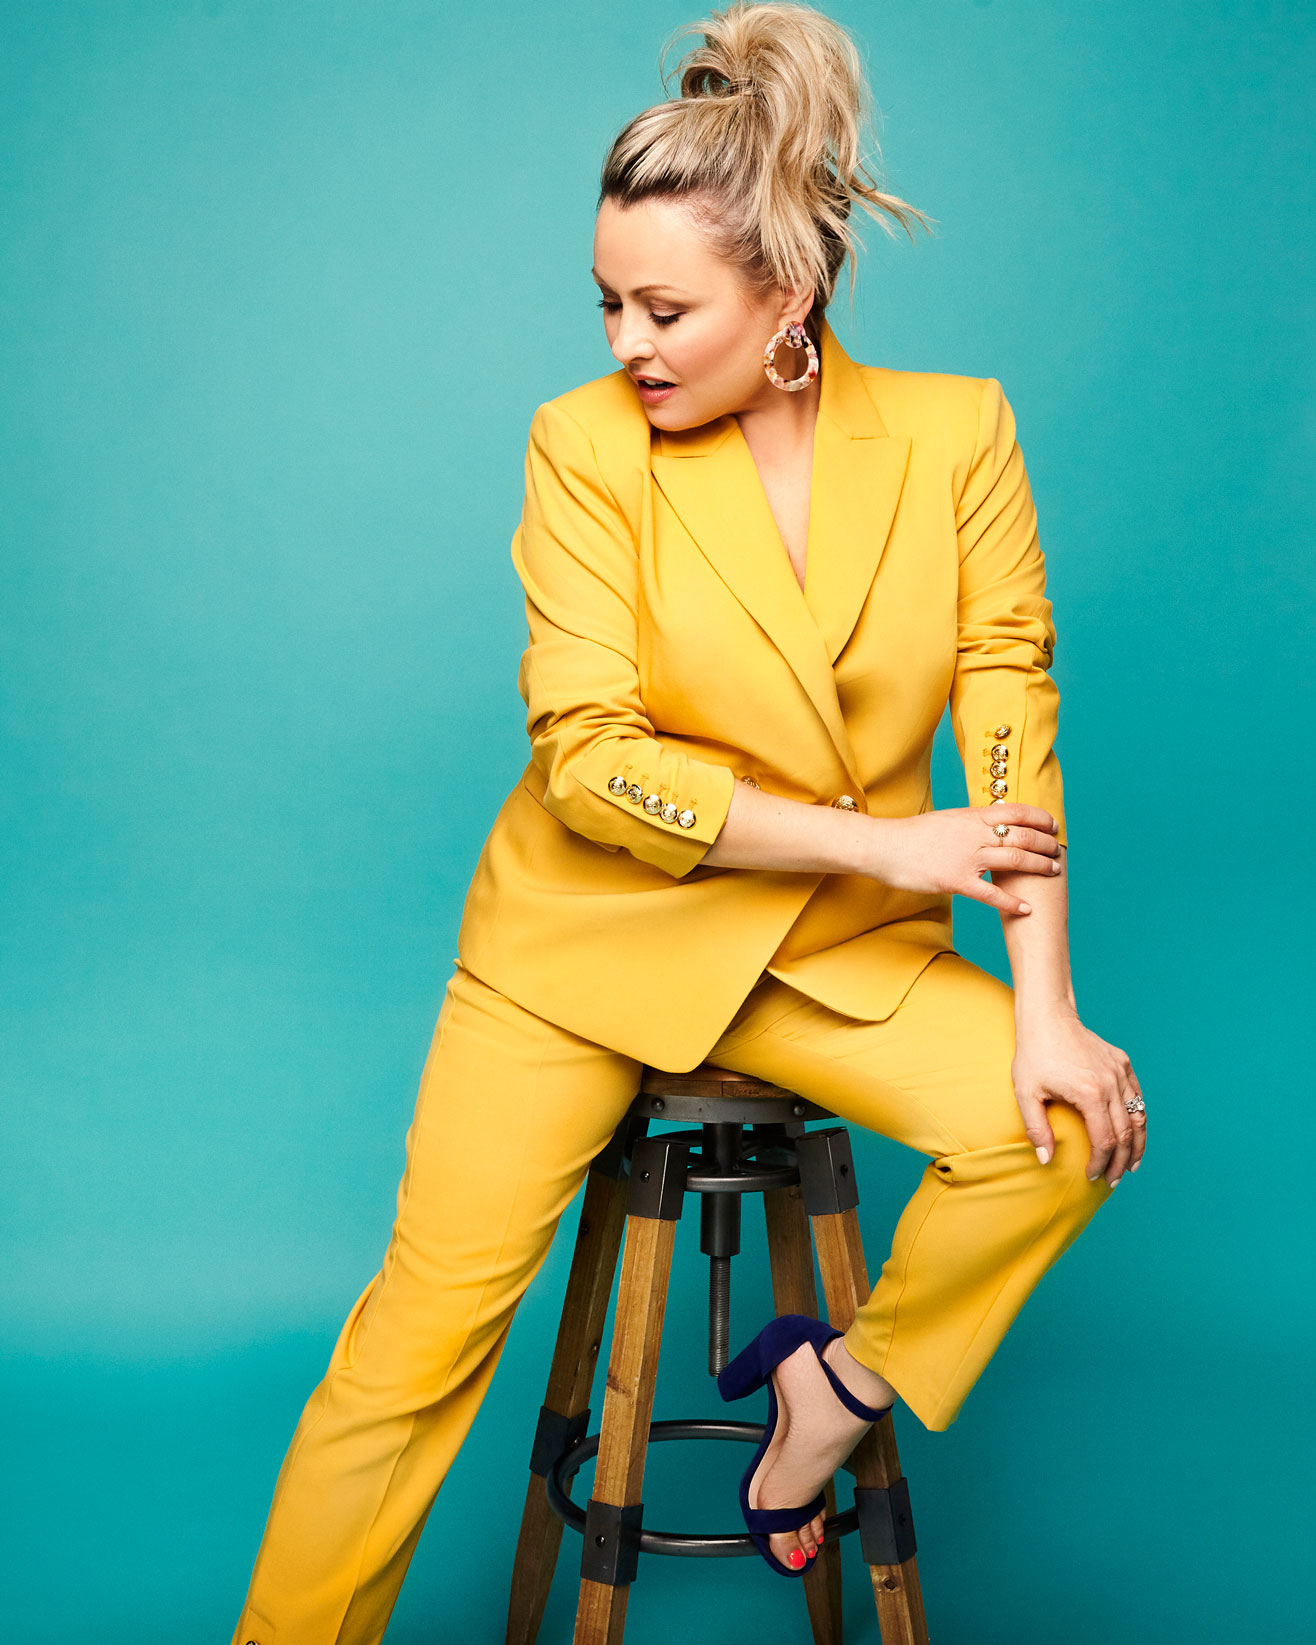 Celebrity and celebrity photographer in Montreal. Portrait of mitsou gelinas in a yellow suit. Photographed by Dariane Sanche.